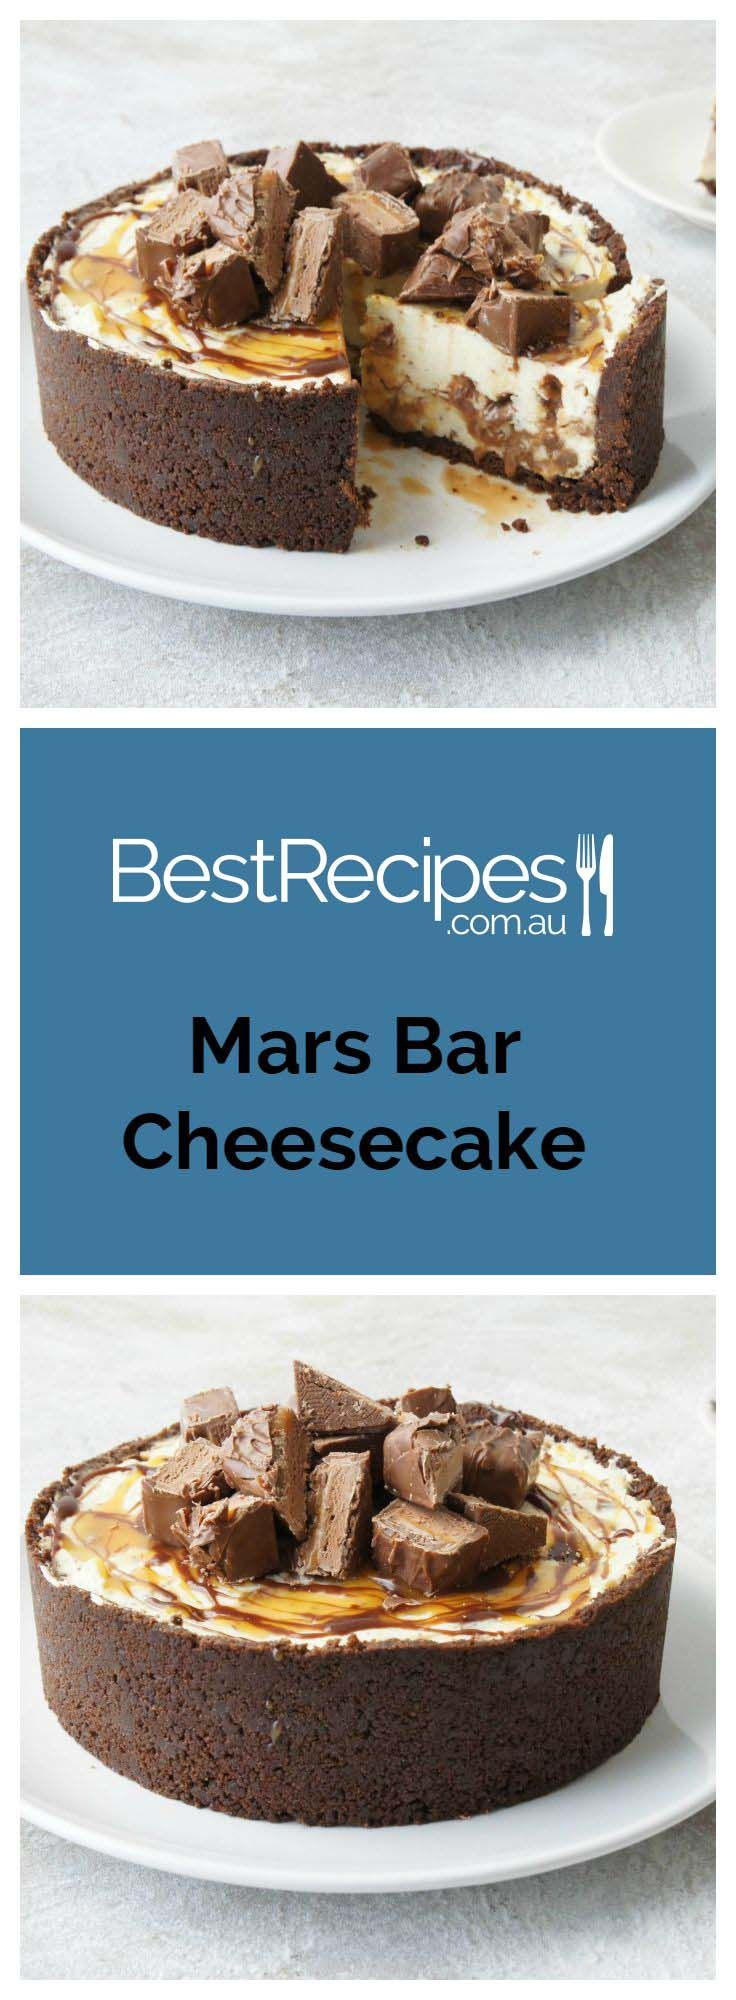 Mars Bar Cheesecake recipe - a decadent no-bake cheesecake swirled with Butterscotch Sauce and Chocolate Sauce topped with Mars Bars. (Cheesecake Recipes No Bake)